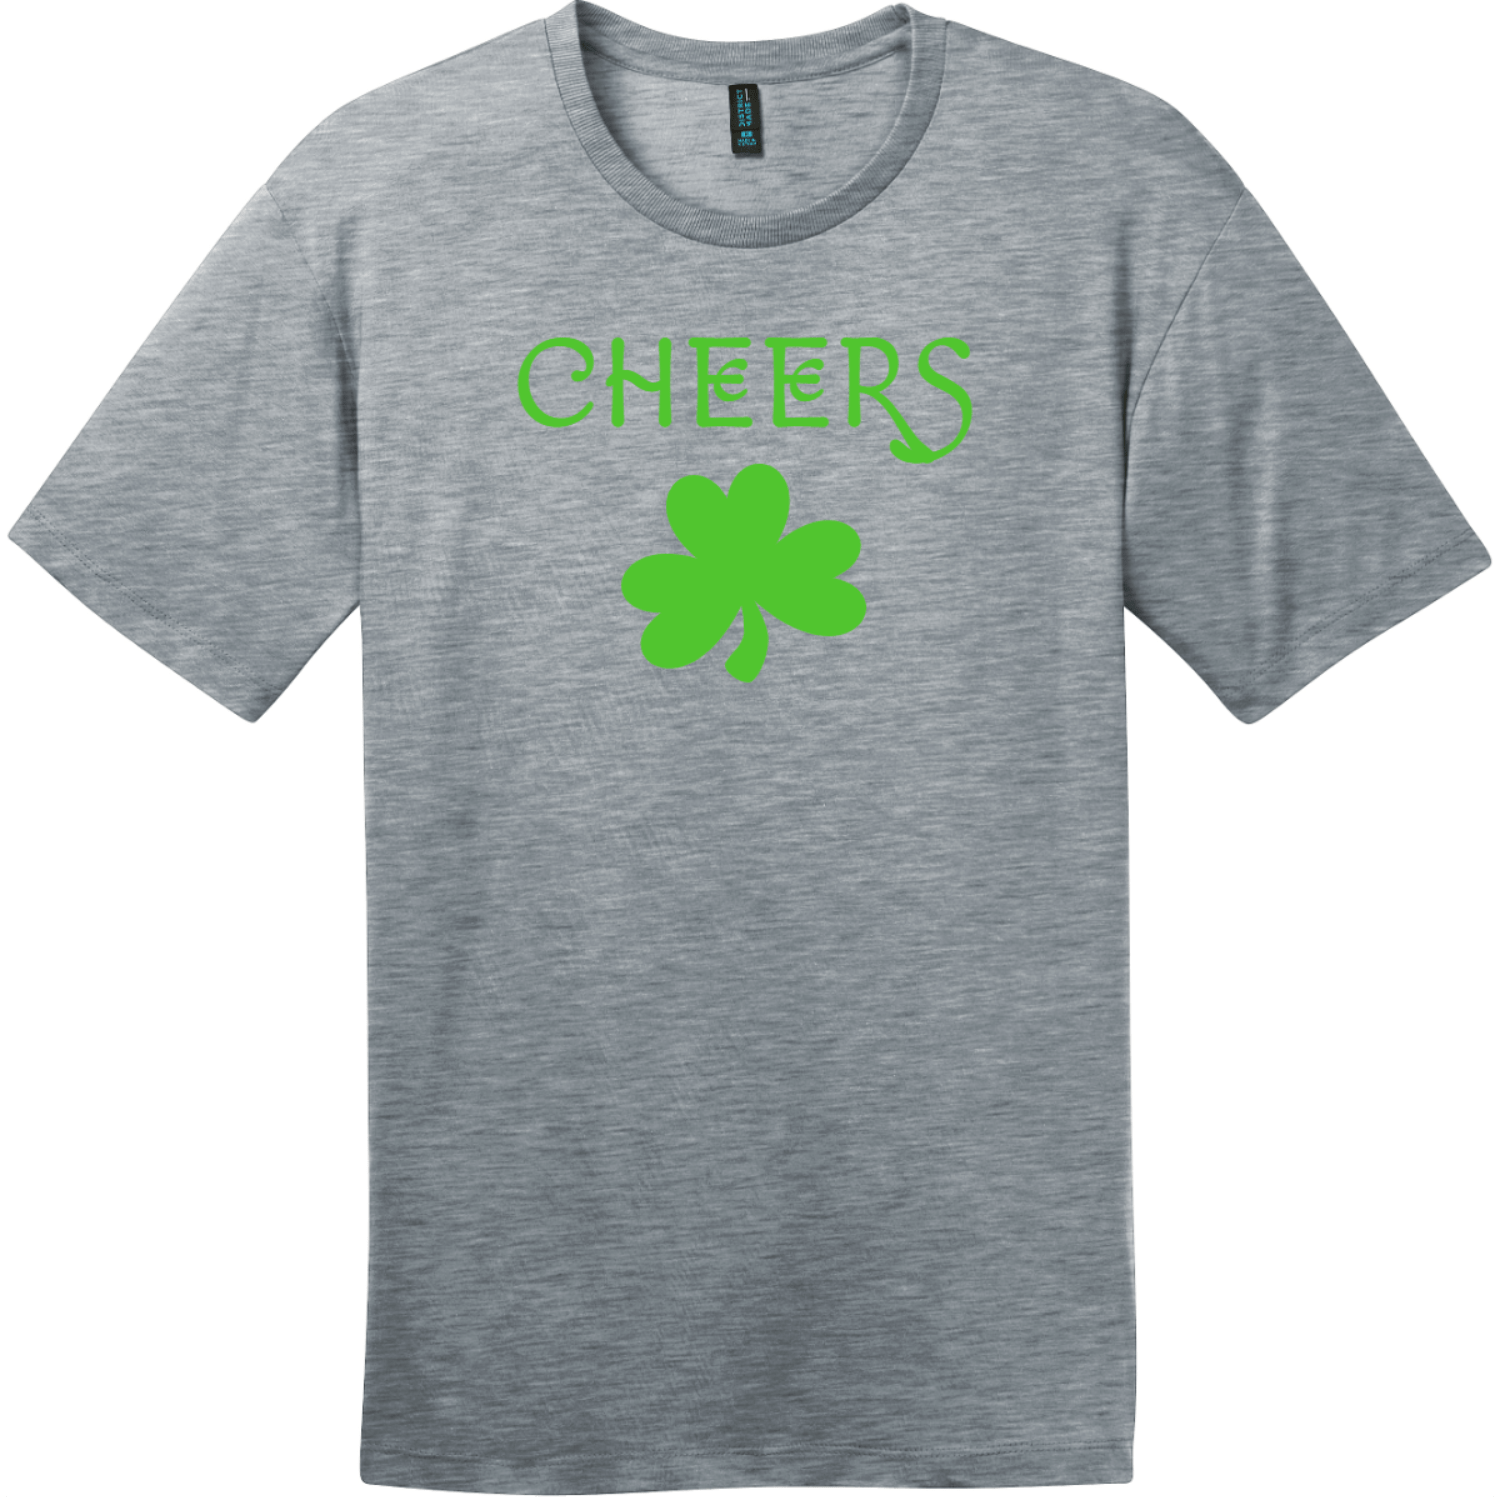 Cheers Shamrock St. Patricks Day T Shirt Heathered Steel District Perfect Weight Tee DT104